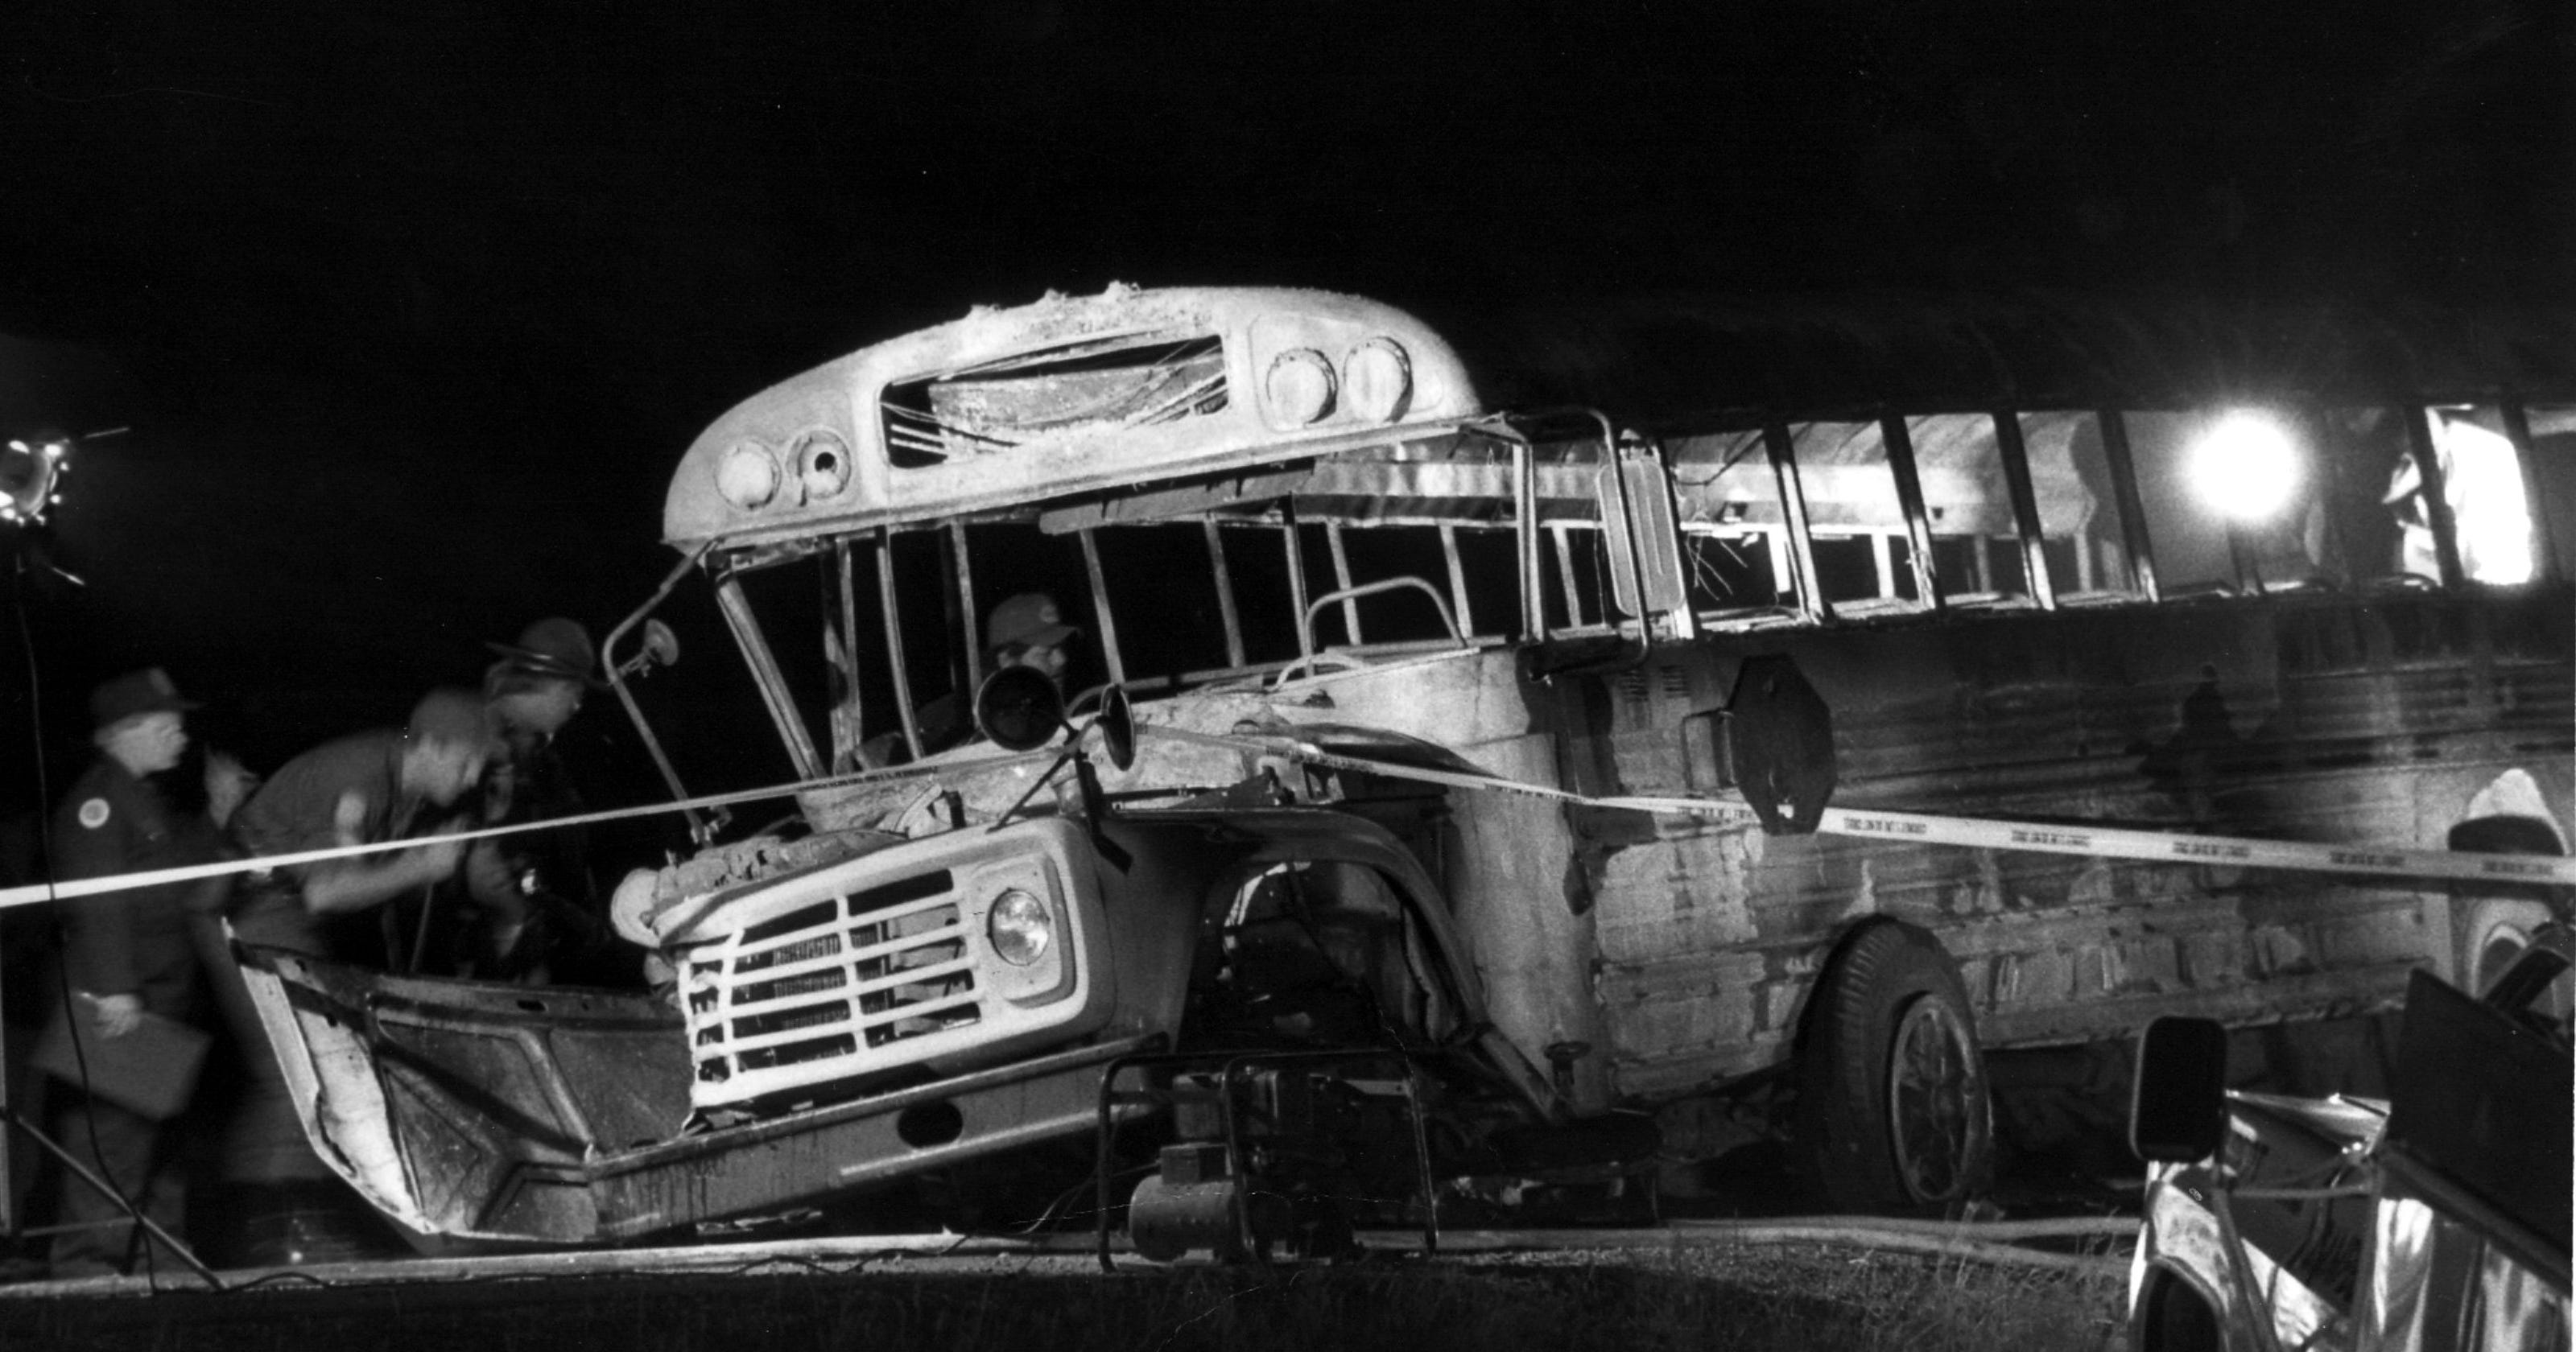 Archives: 1988 reports on bus safety after Carrollton crash